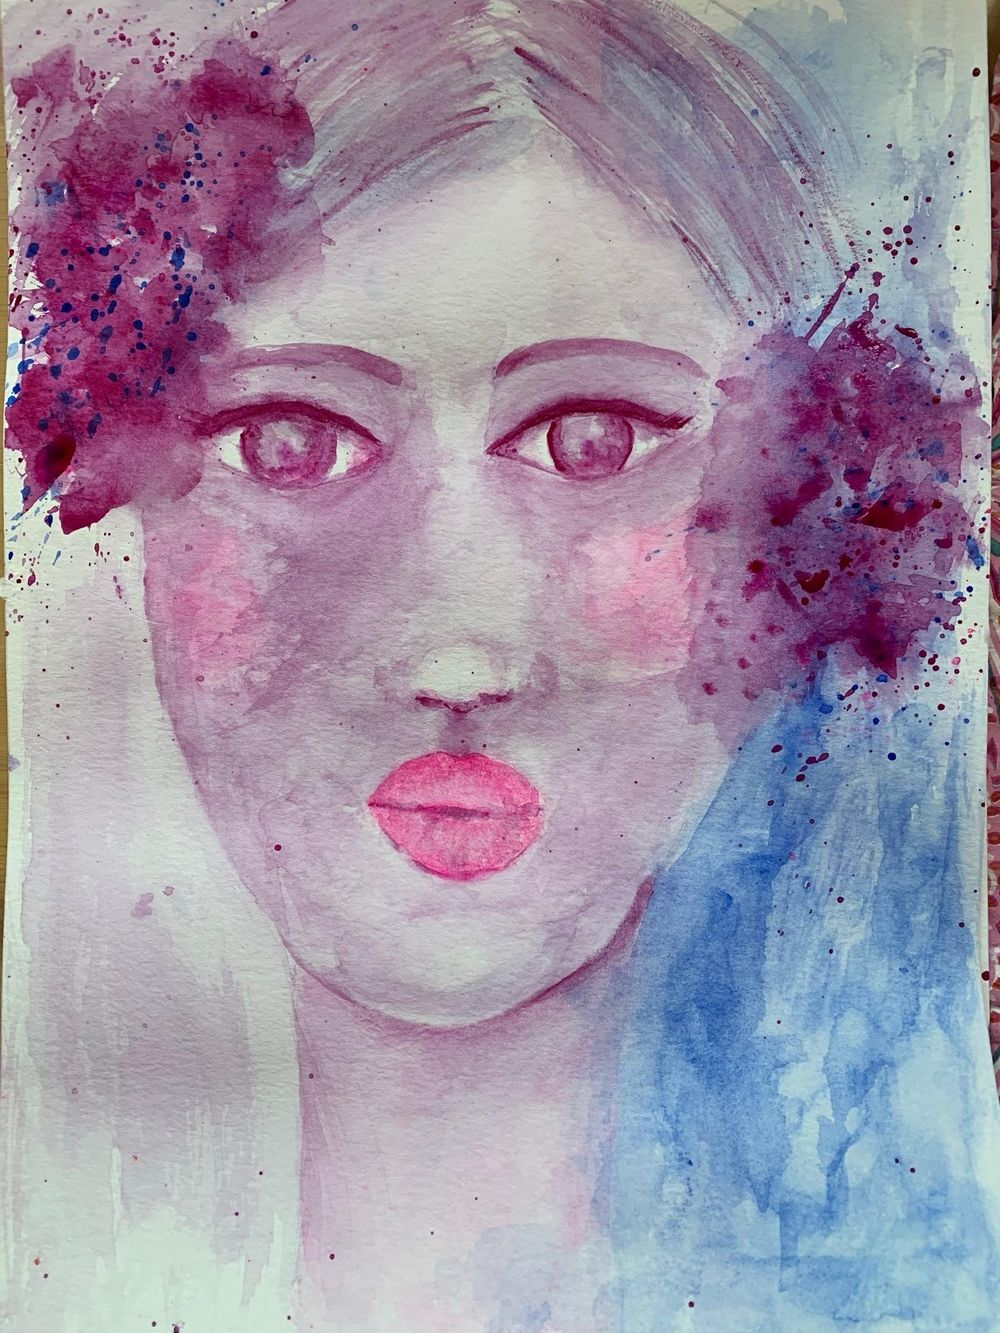 Whimsical Face in watercolour - image 2 - student project